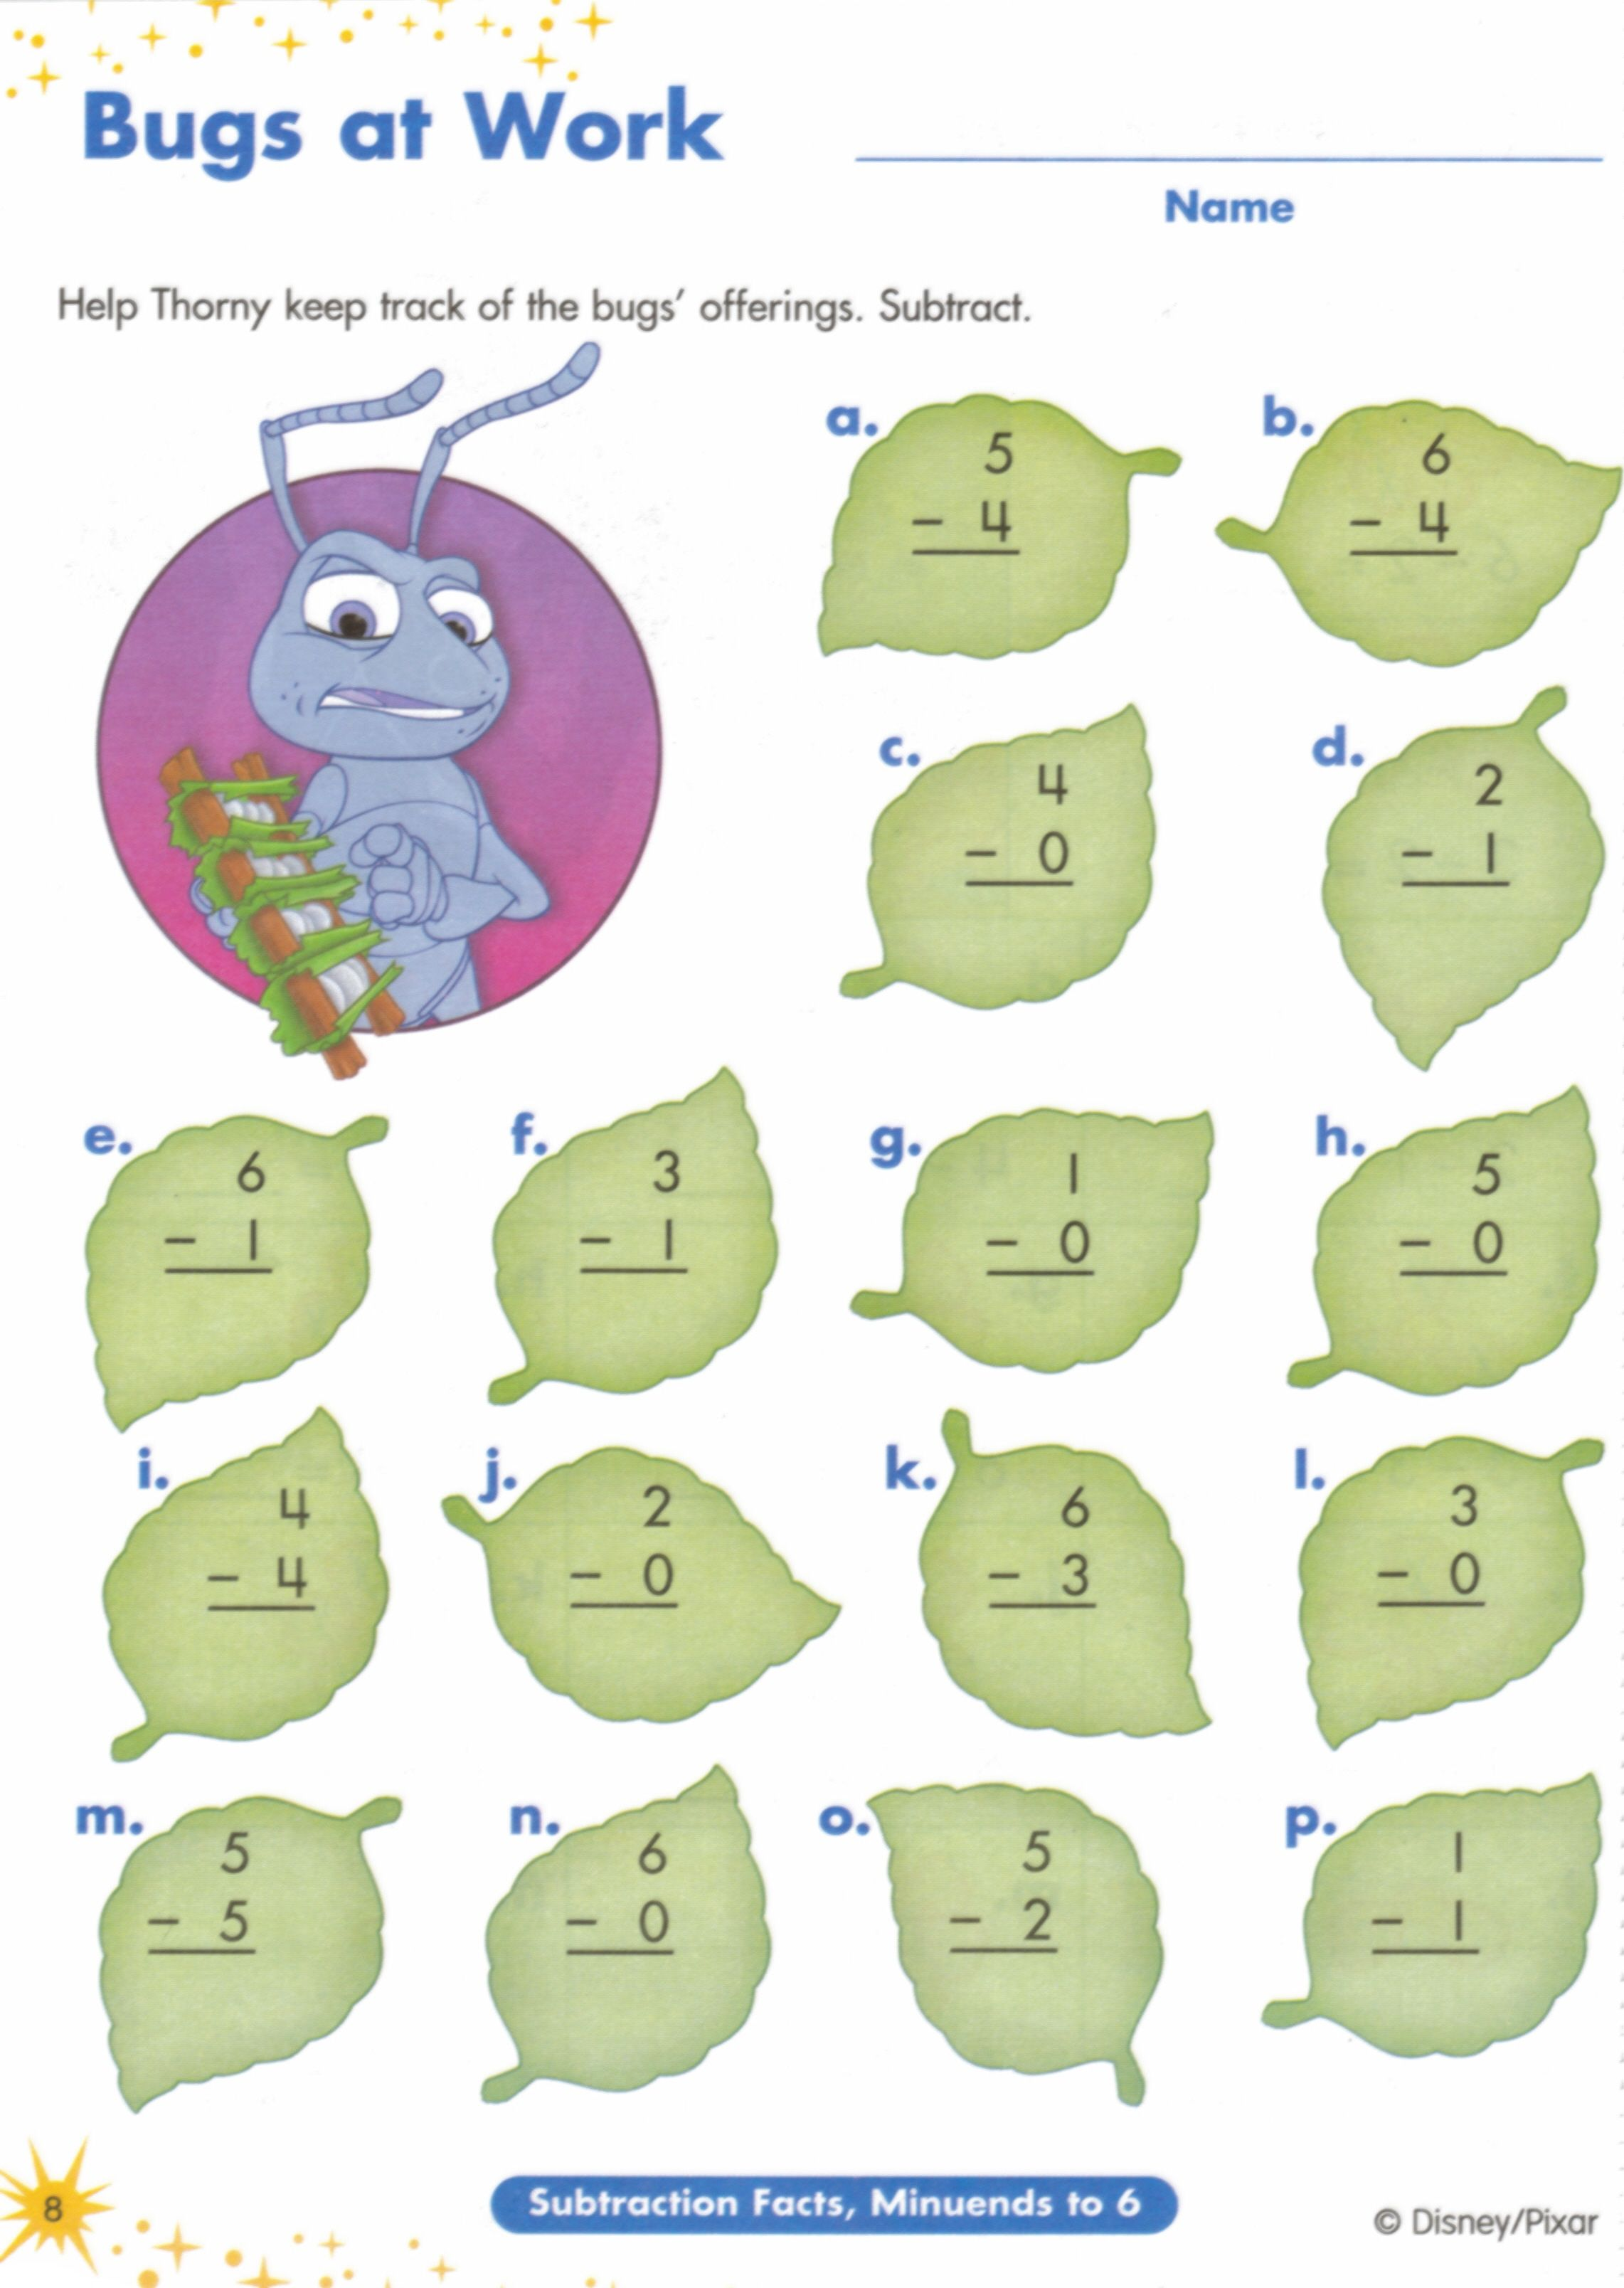 Proatmealus  Scenic  Images About Worksheets On Pinterest  Fun Facts For Kids  With Exciting  Images About Worksheets On Pinterest  Fun Facts For Kids Earth Day Worksheets And Jungles With Enchanting Improper Fractions Worksheets Also Olympic Games Worksheets In Addition Chapter  Memory Psychology Worksheet And Vegetable Worksheets For Preschool As Well As Combining Like Terms Equations Worksheet Additionally Scatter Plot Data Sets Worksheets From Pinterestcom With Proatmealus  Exciting  Images About Worksheets On Pinterest  Fun Facts For Kids  With Enchanting  Images About Worksheets On Pinterest  Fun Facts For Kids Earth Day Worksheets And Jungles And Scenic Improper Fractions Worksheets Also Olympic Games Worksheets In Addition Chapter  Memory Psychology Worksheet From Pinterestcom